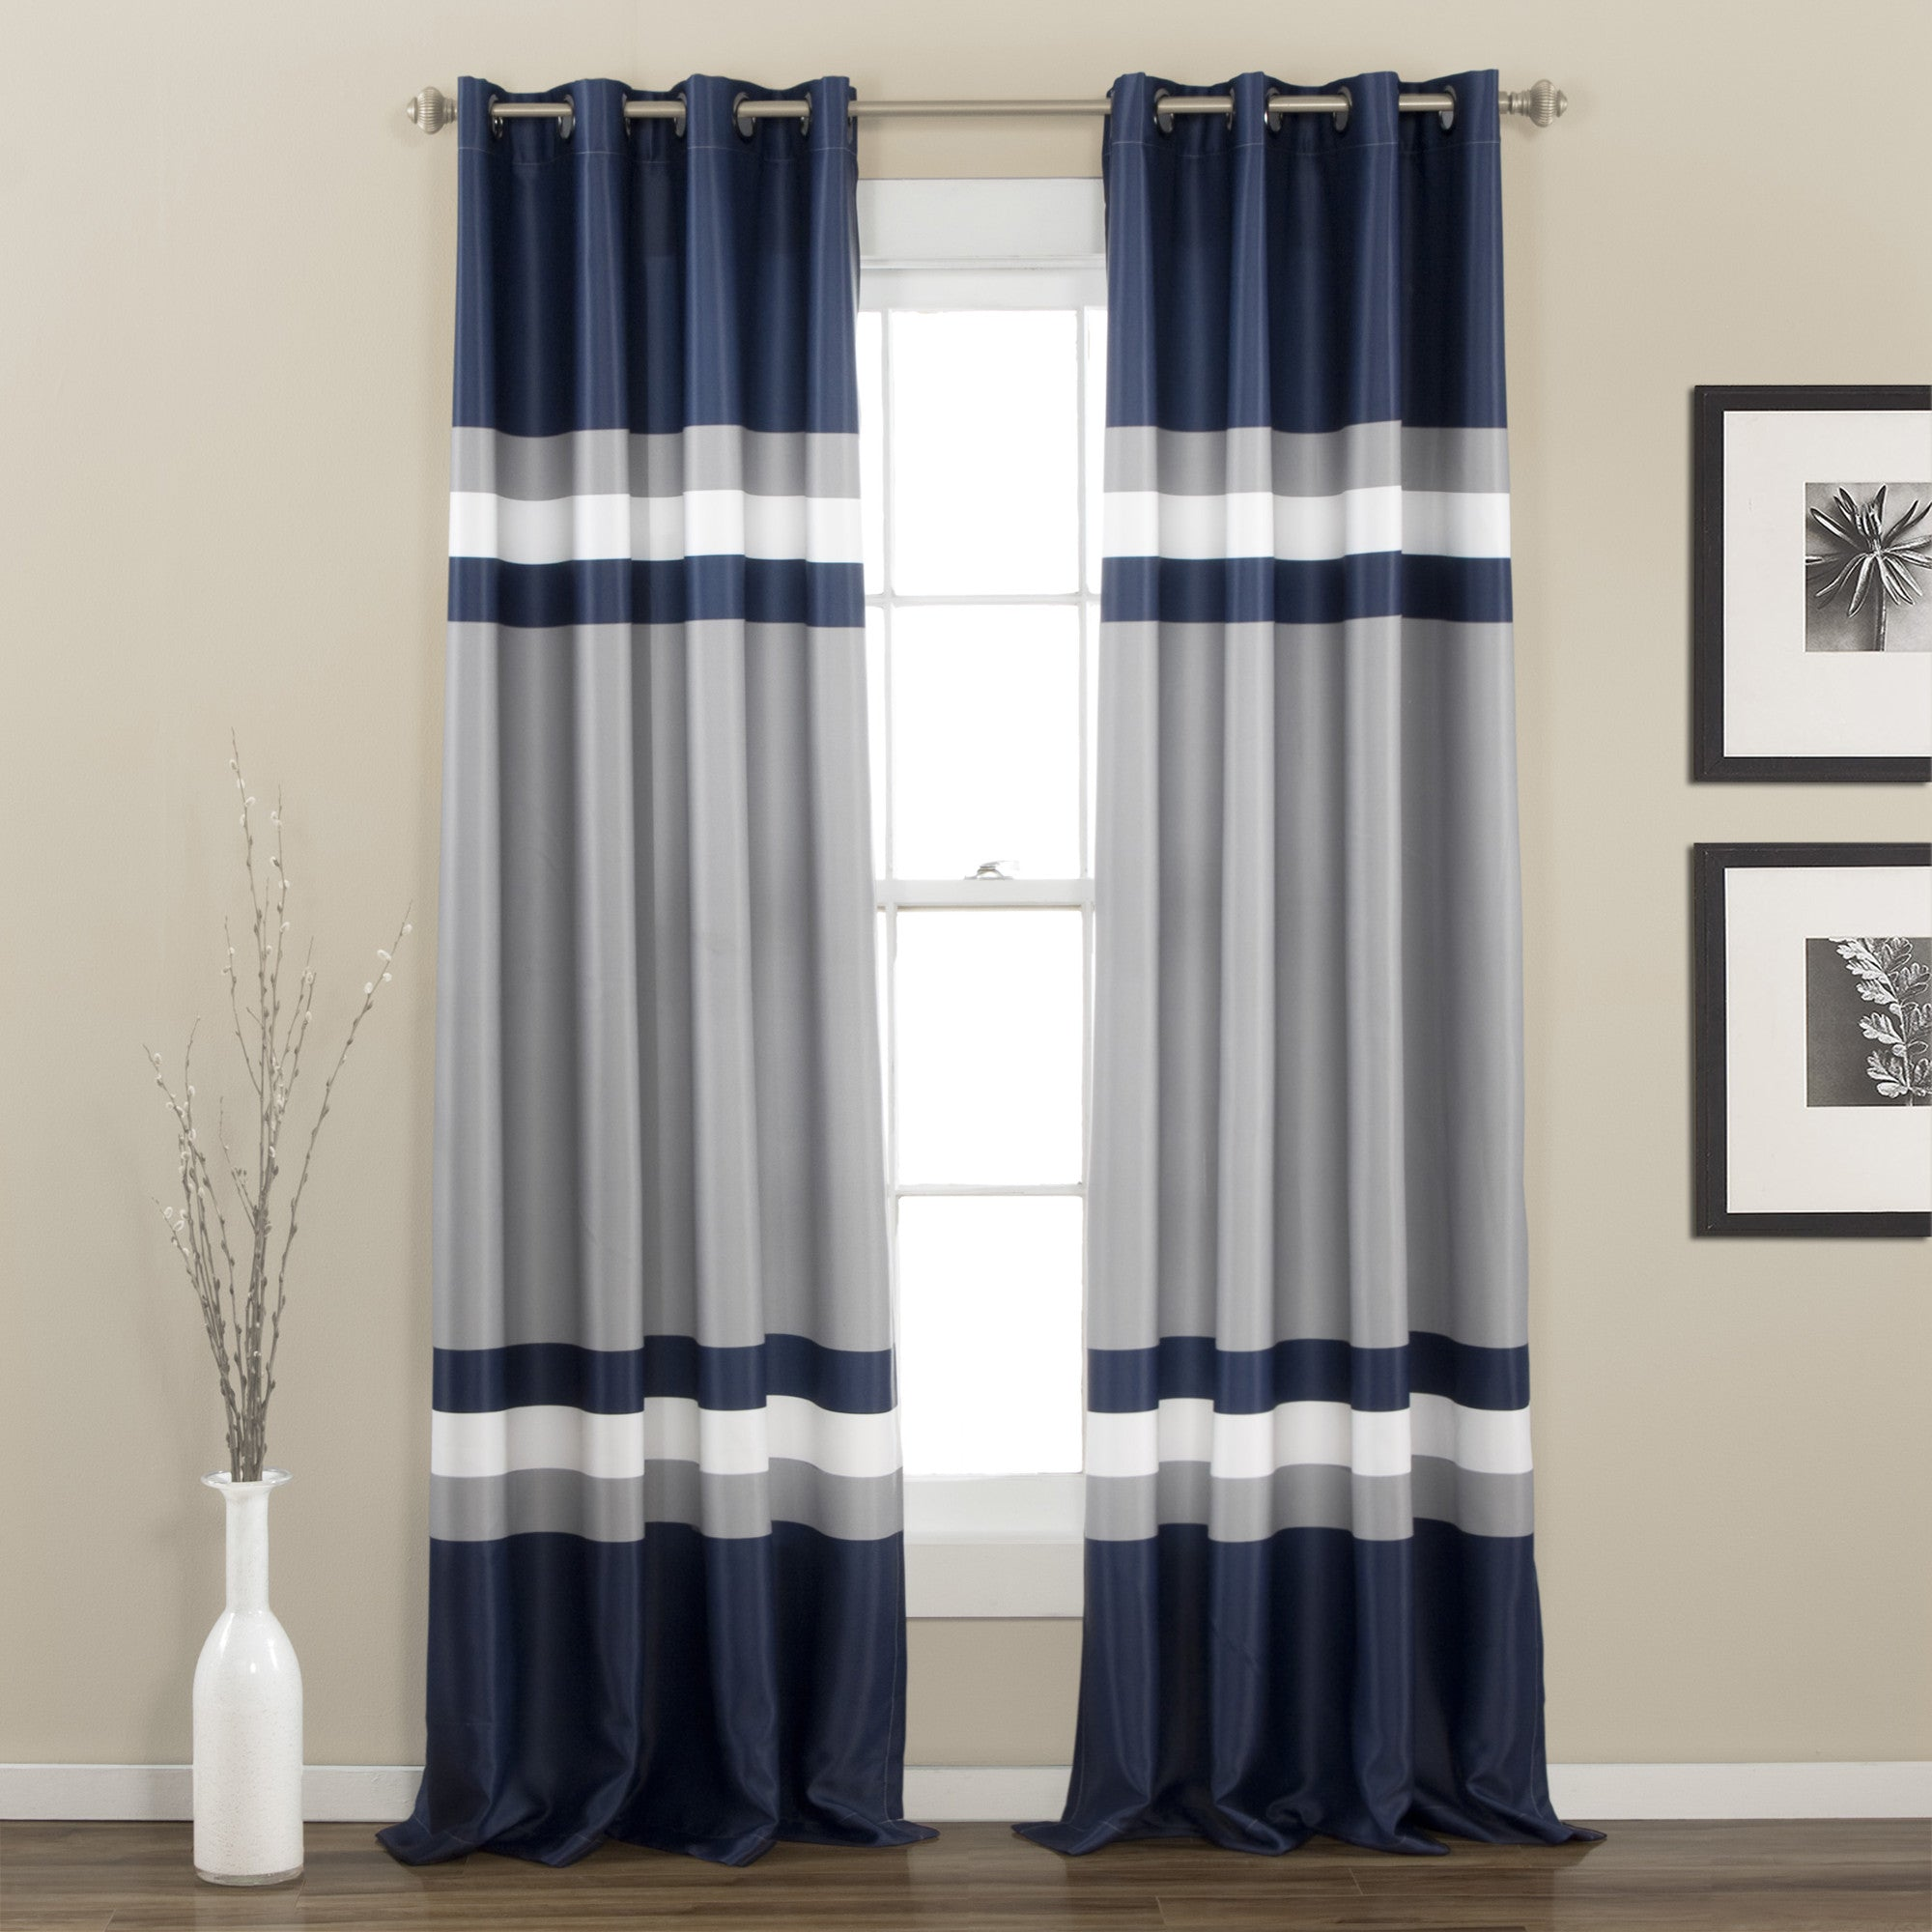 blackout curtains stripe striped pair curtain lush ip com walmart window decor